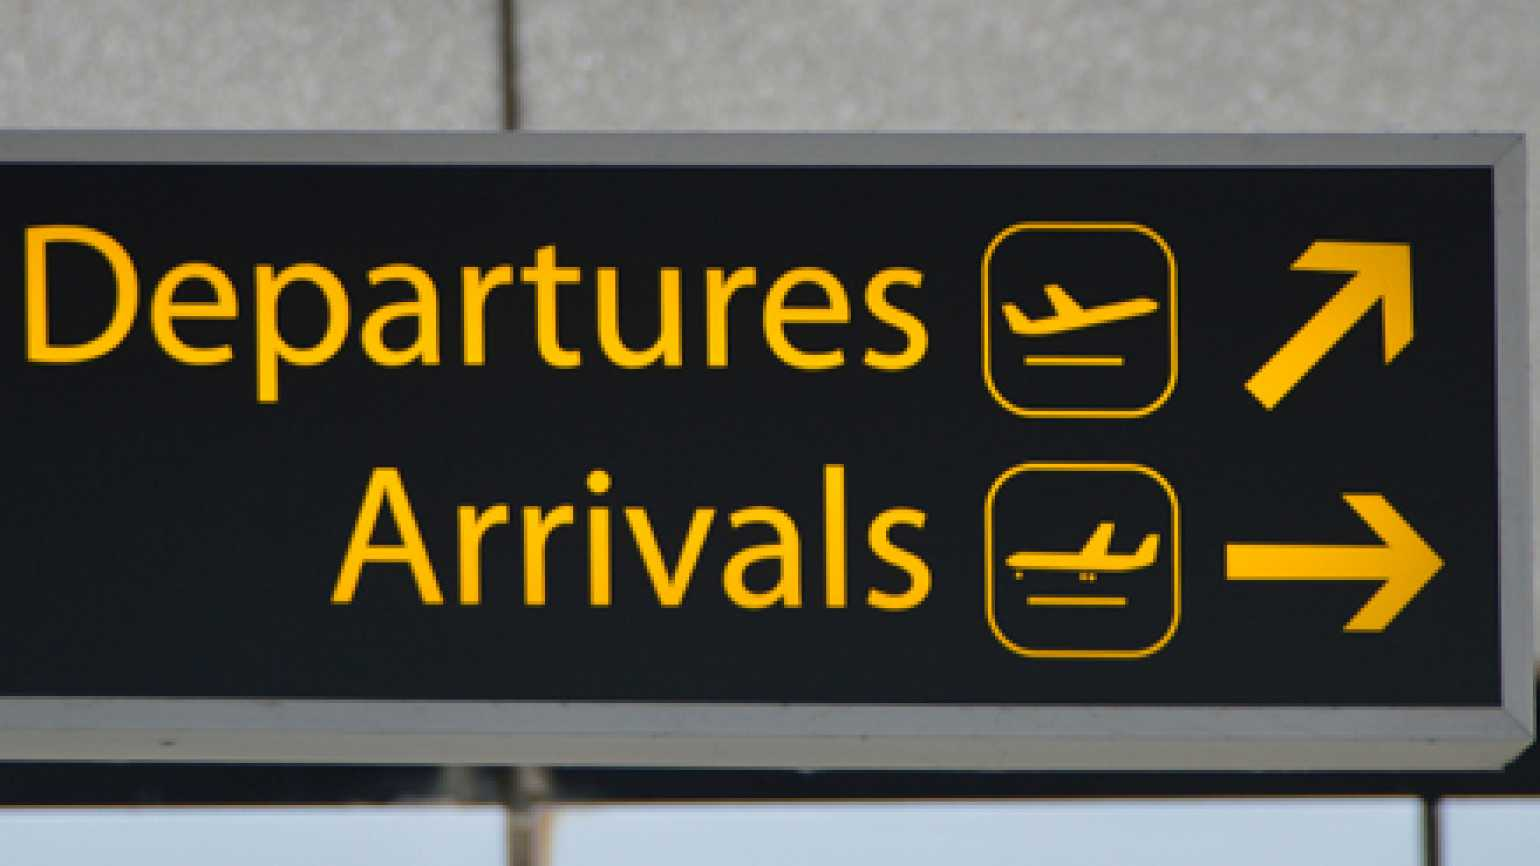 Airport Departures-Arrivals sign